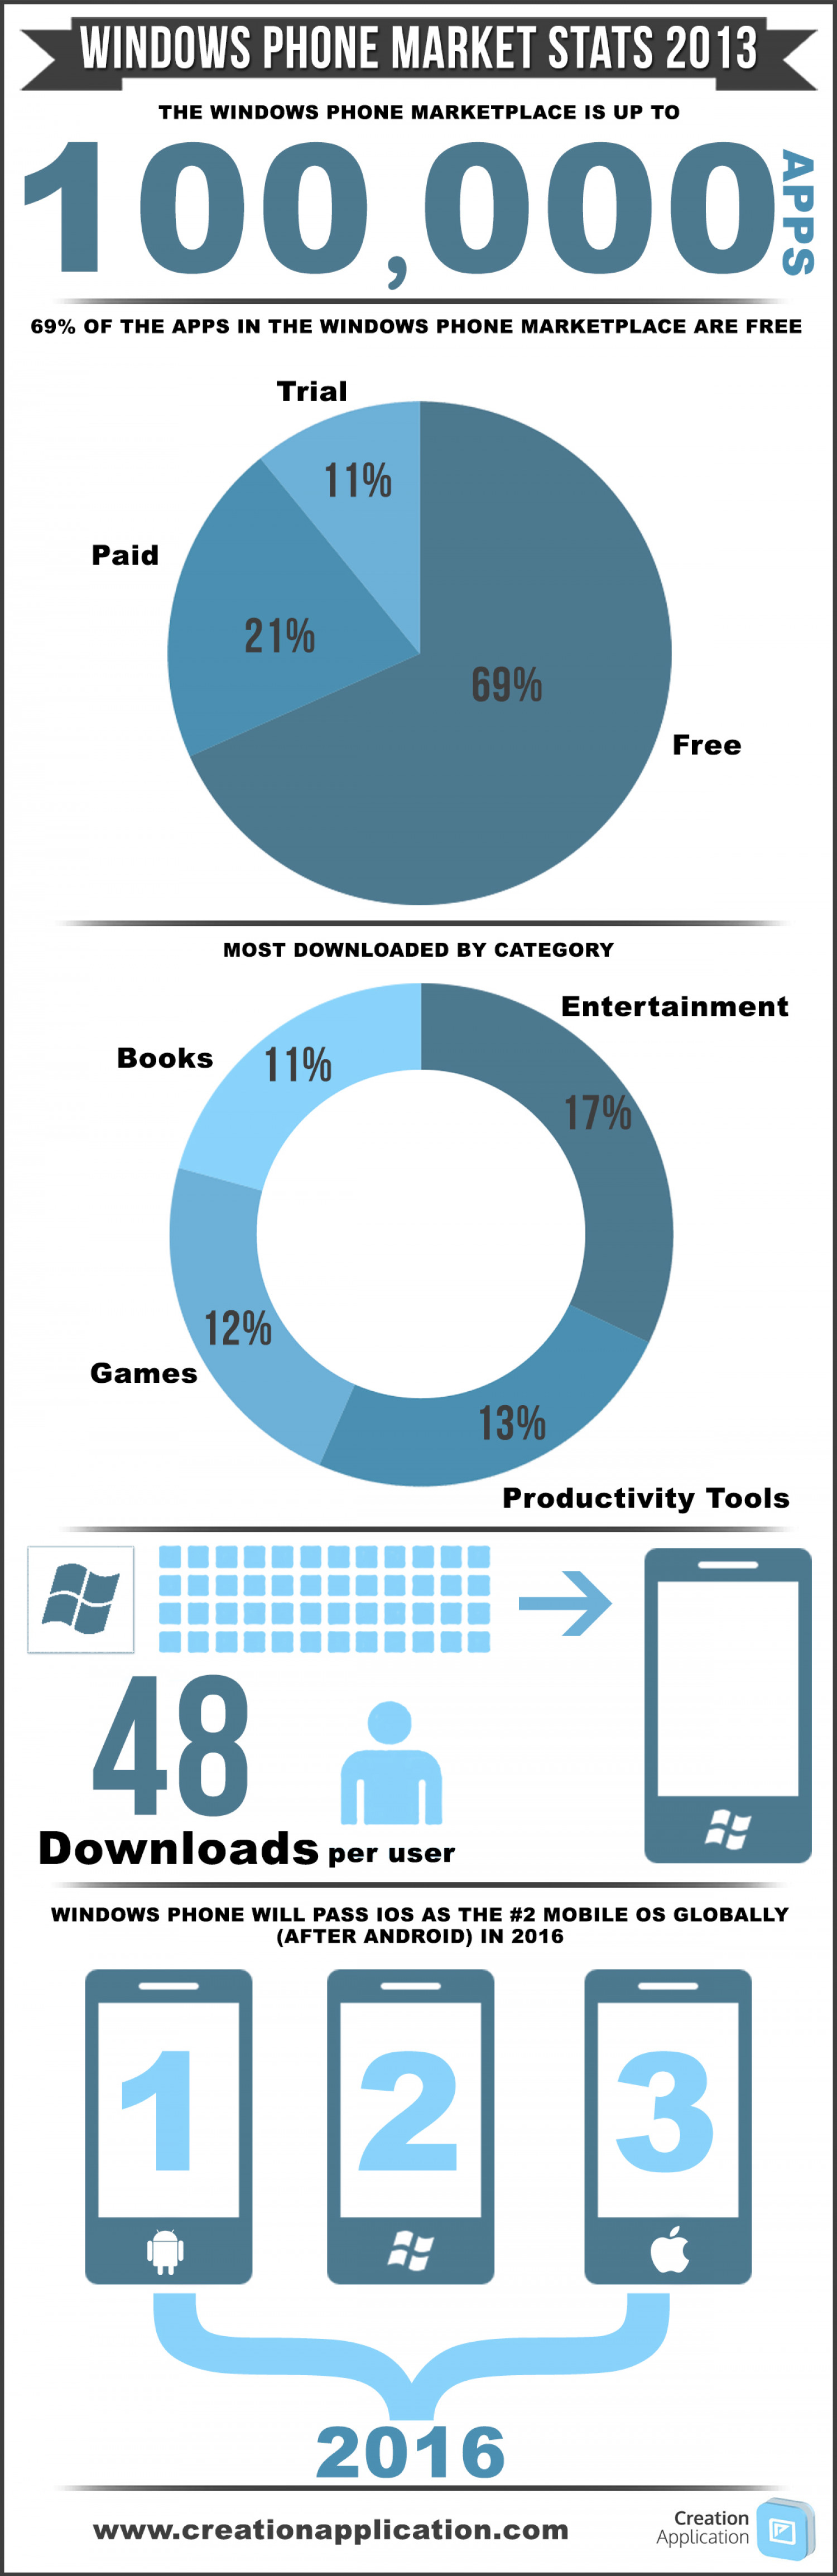 Windows Phone Market Infographic 2013 Infographic